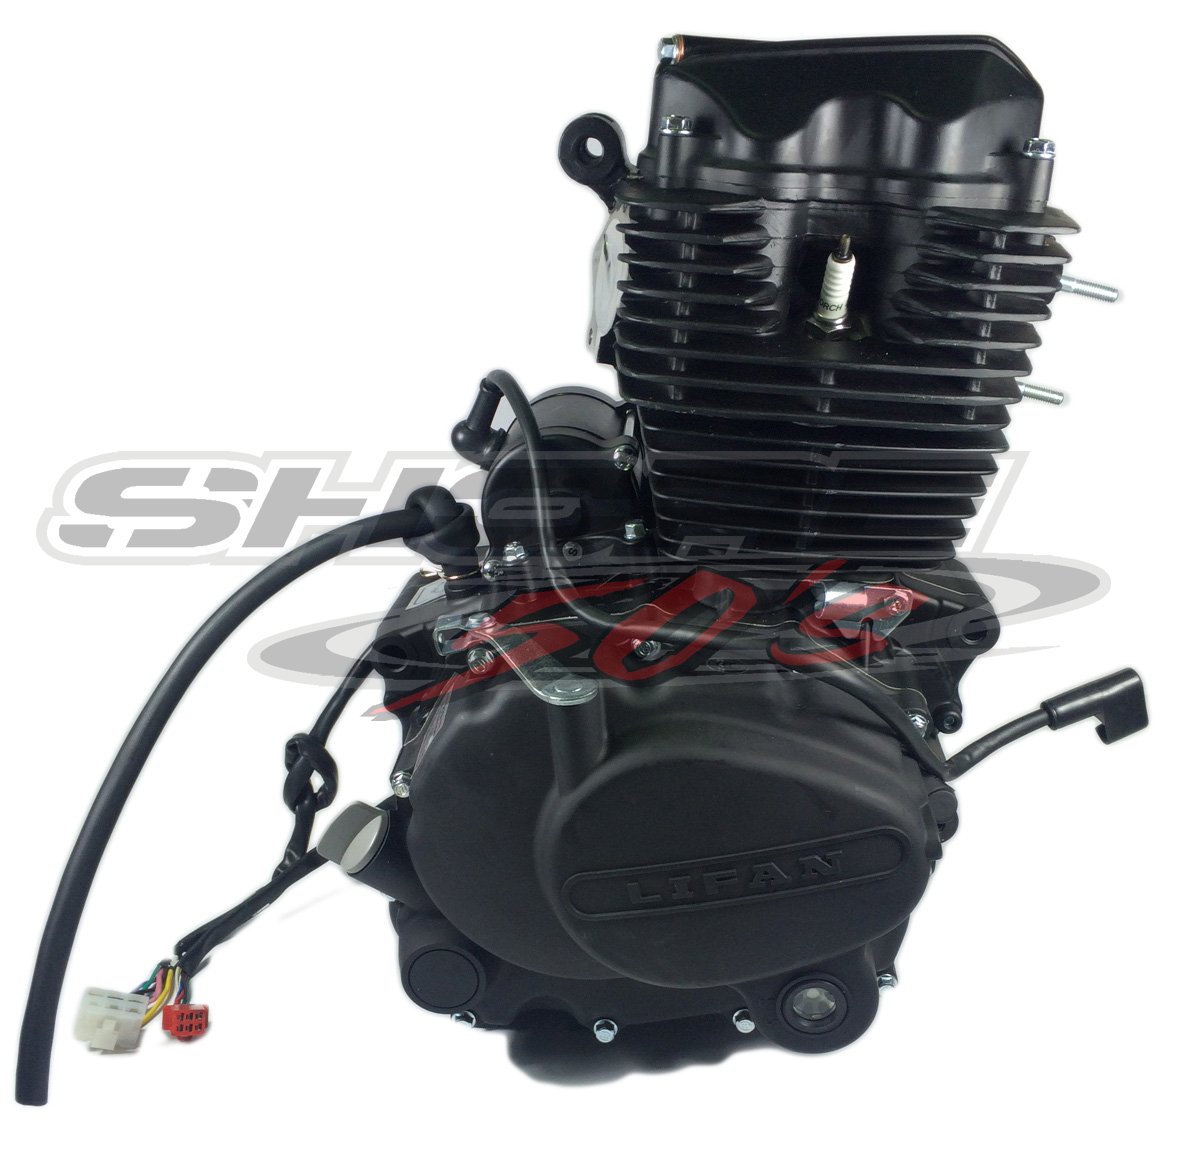 S P I W on Lifan 150cc Engine